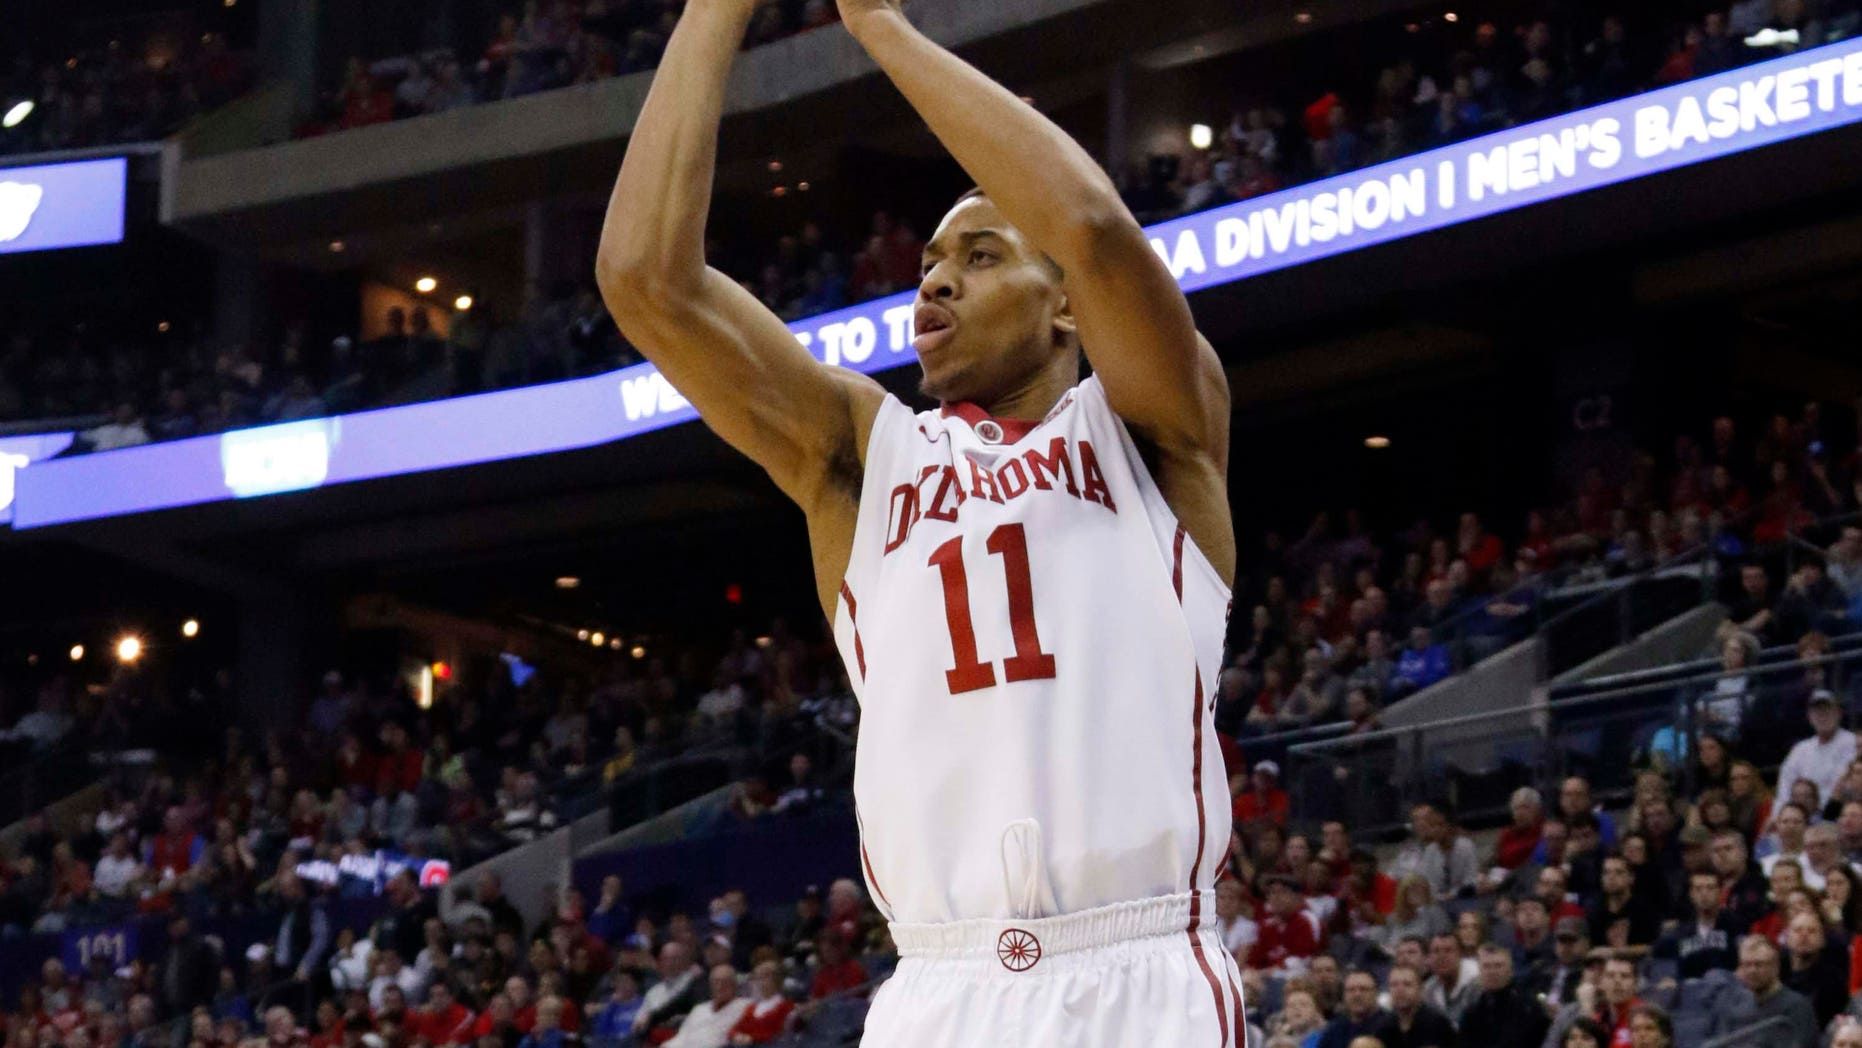 March 22, 2015: Oklahoma's Isaiah Cousins shoots a 3-point shot against Dayton in the first half of an NCAA tournament college basketball game in the Round of 32 in Columbus, Ohio.